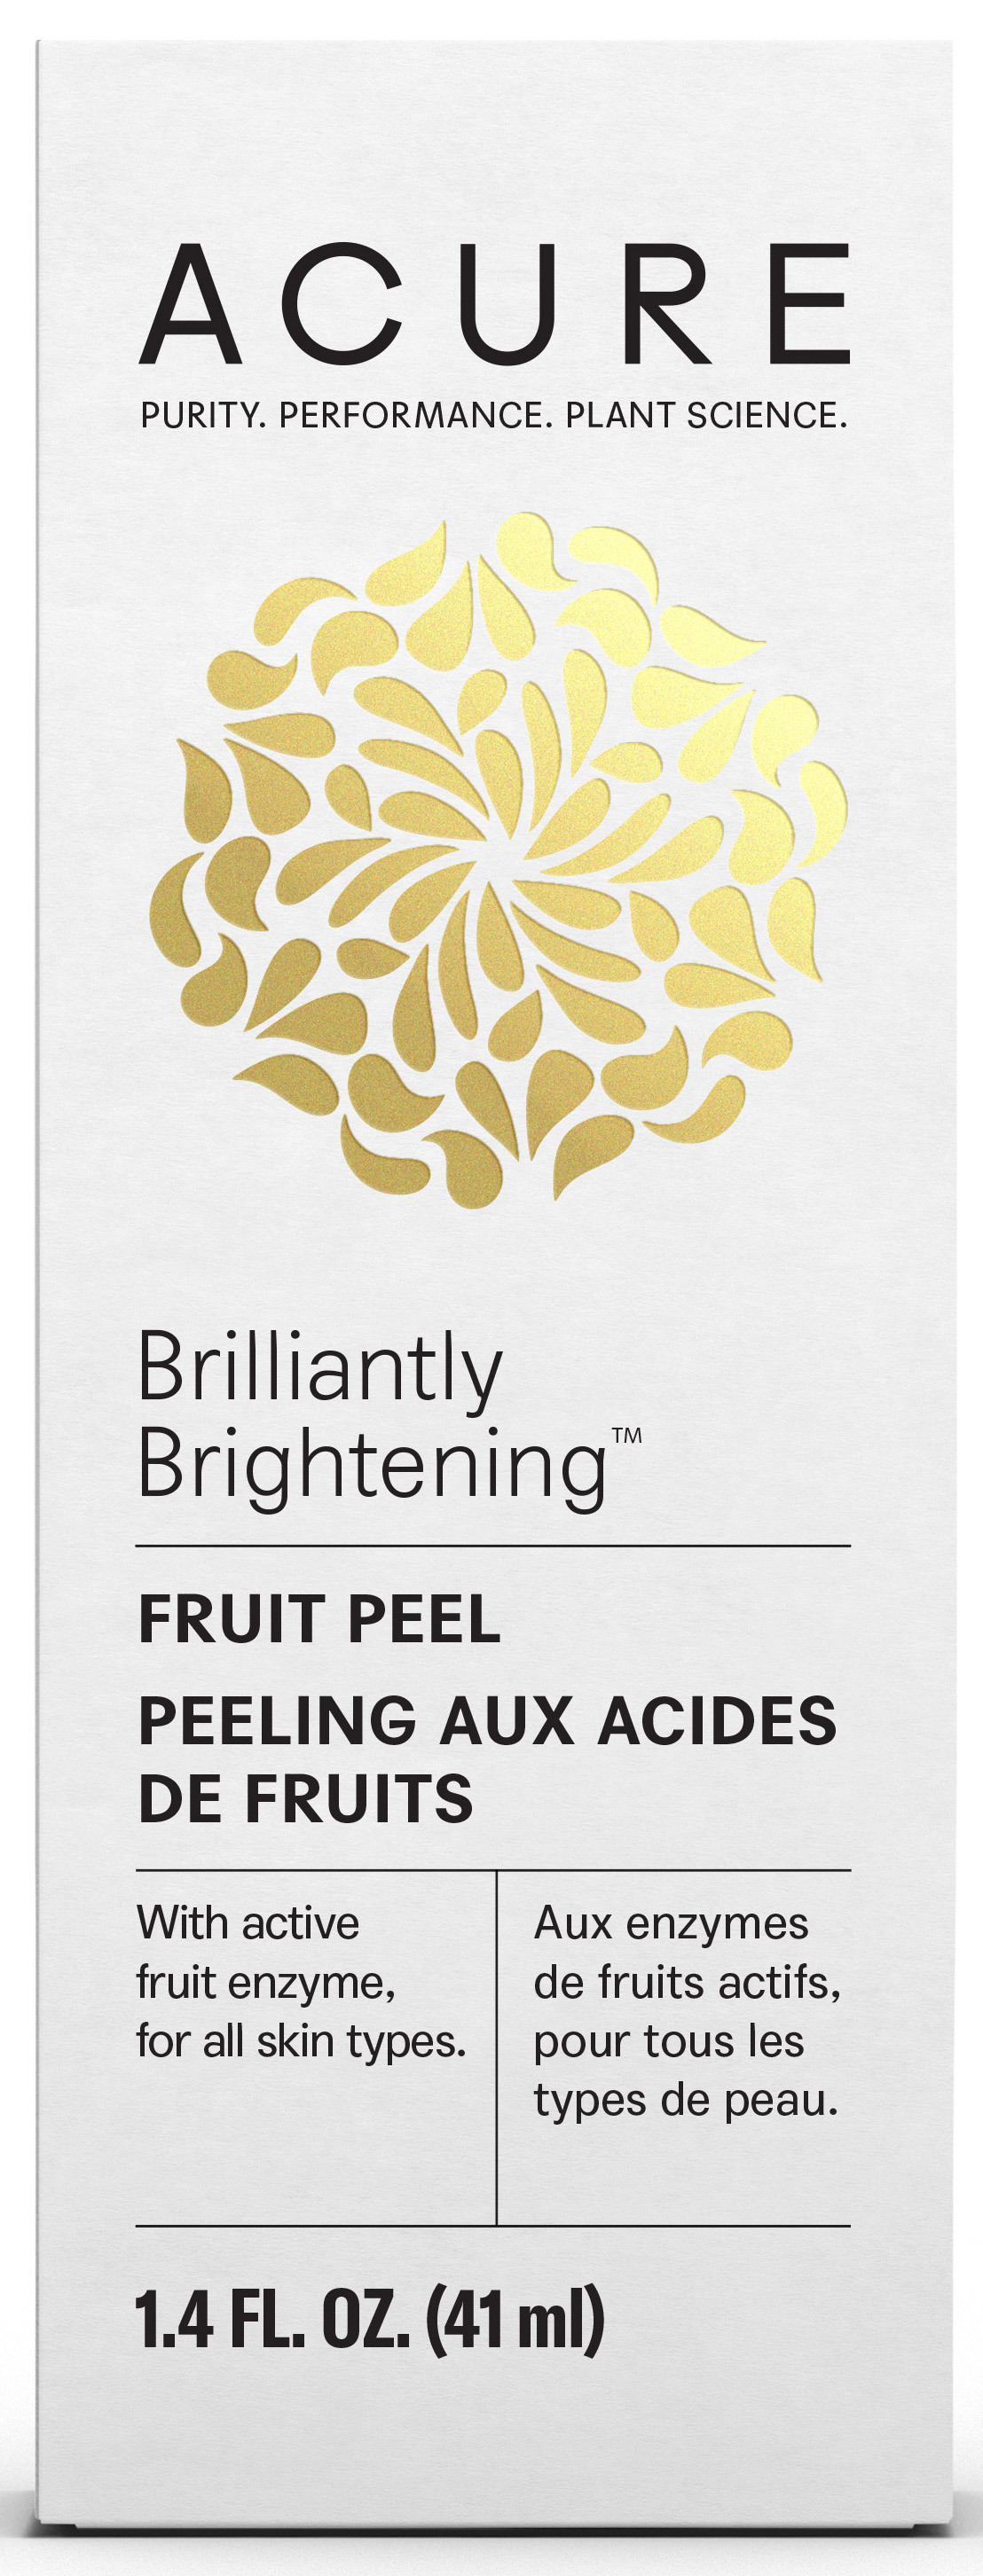 Fruit Peel With Active Fruit Enzyme, For All Skin Types